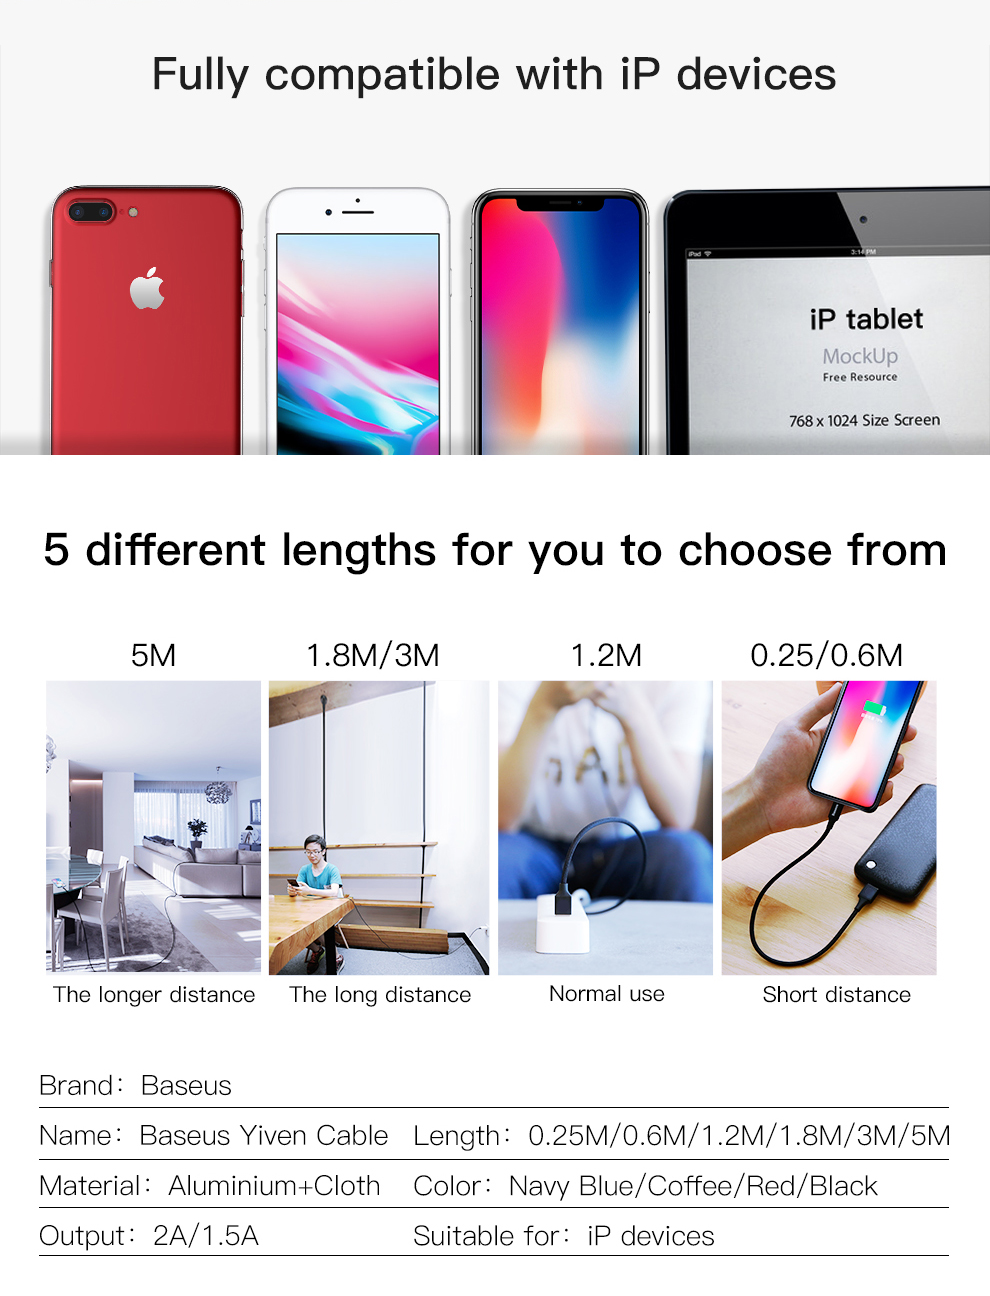 Baseus USB Cable For iPhone Xs Max Xr X 11 8 7 6 6s 5s iPad Fast Charging Charger Mobile Phone Cable For iPhone Wire Cord 3m 5m 18